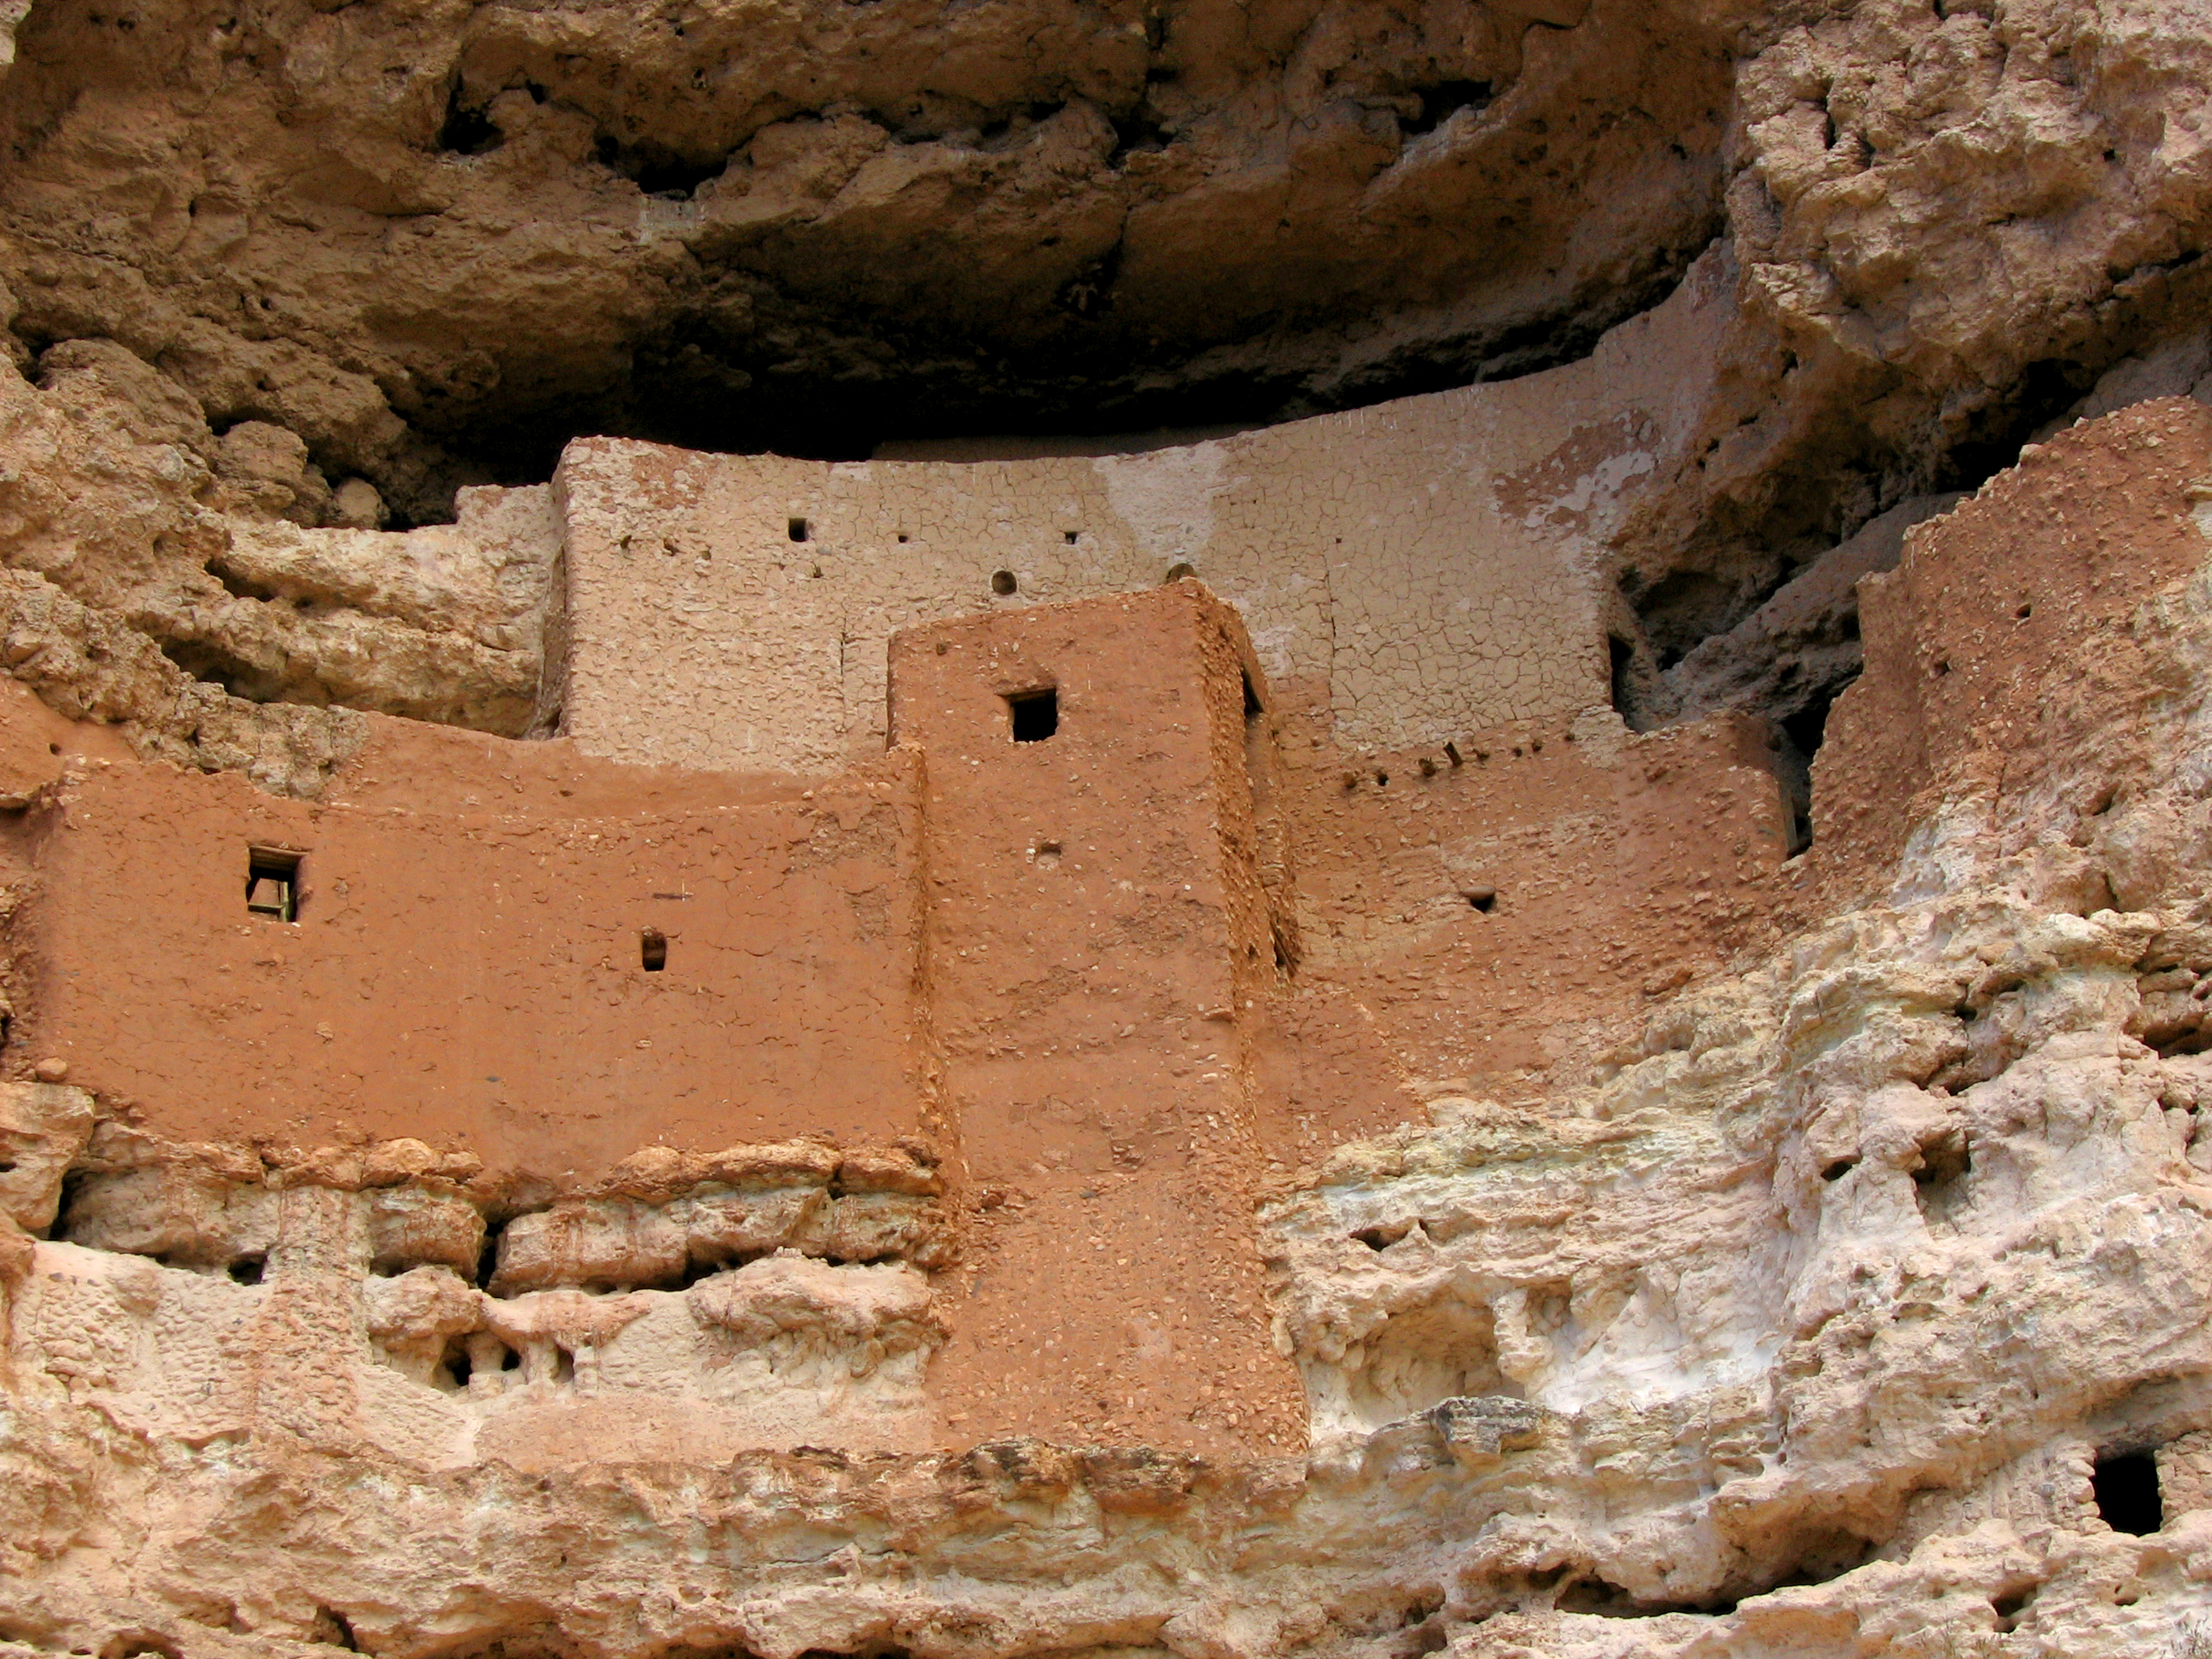 canyon of the ancients map with File Montezuma Castle National Monument2 on Maps besides Canyons Ancients National Monument also File Montezuma Castle National Monument2 further Best Outdoor Hidden Gems St George Ut furthermore Monument Valley.